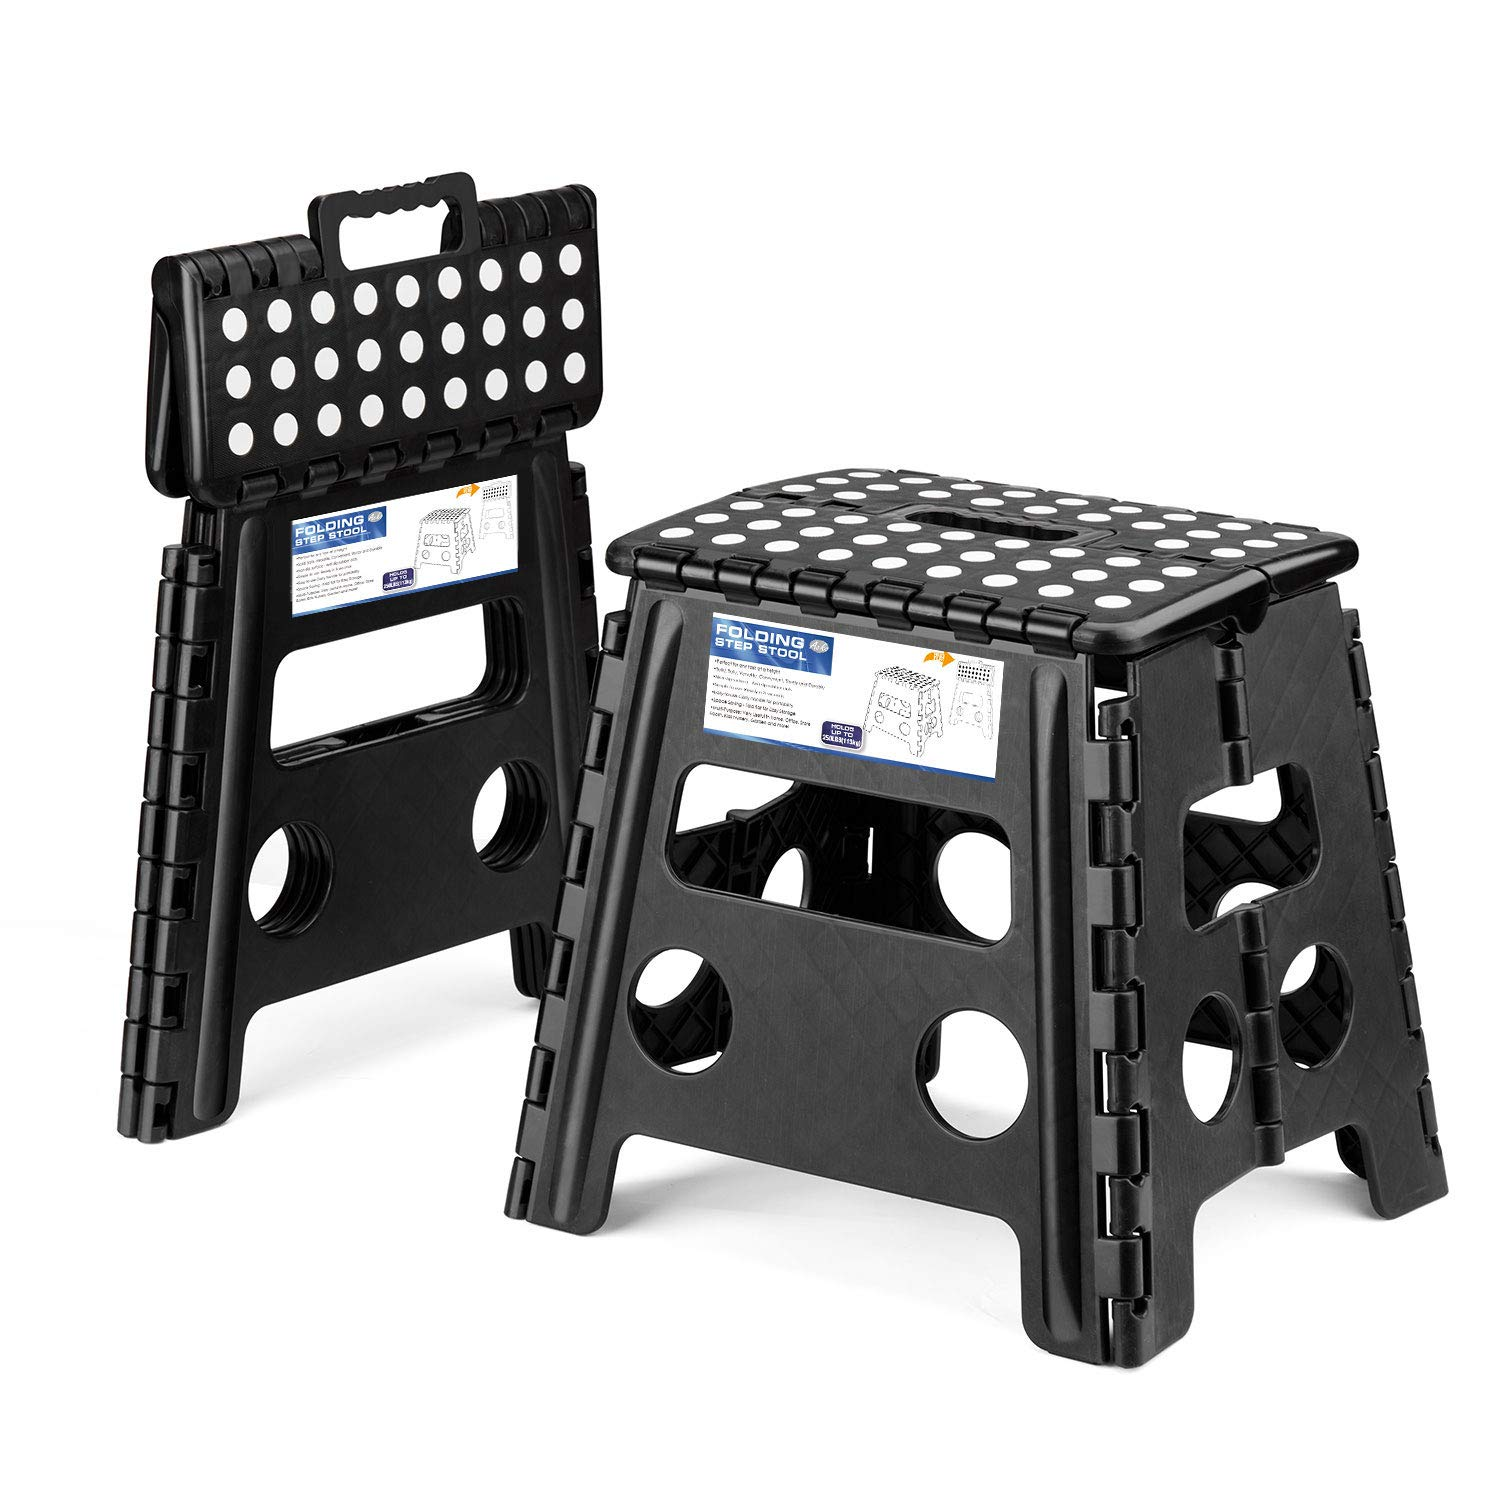 Acko 2PACK Folding Step Stool - 13 inch Height Premium Heavy Duty Foldable Stool Adults, Kitchen Garden Bathroom Stepping Stool (Black, 2PACK) by Acko